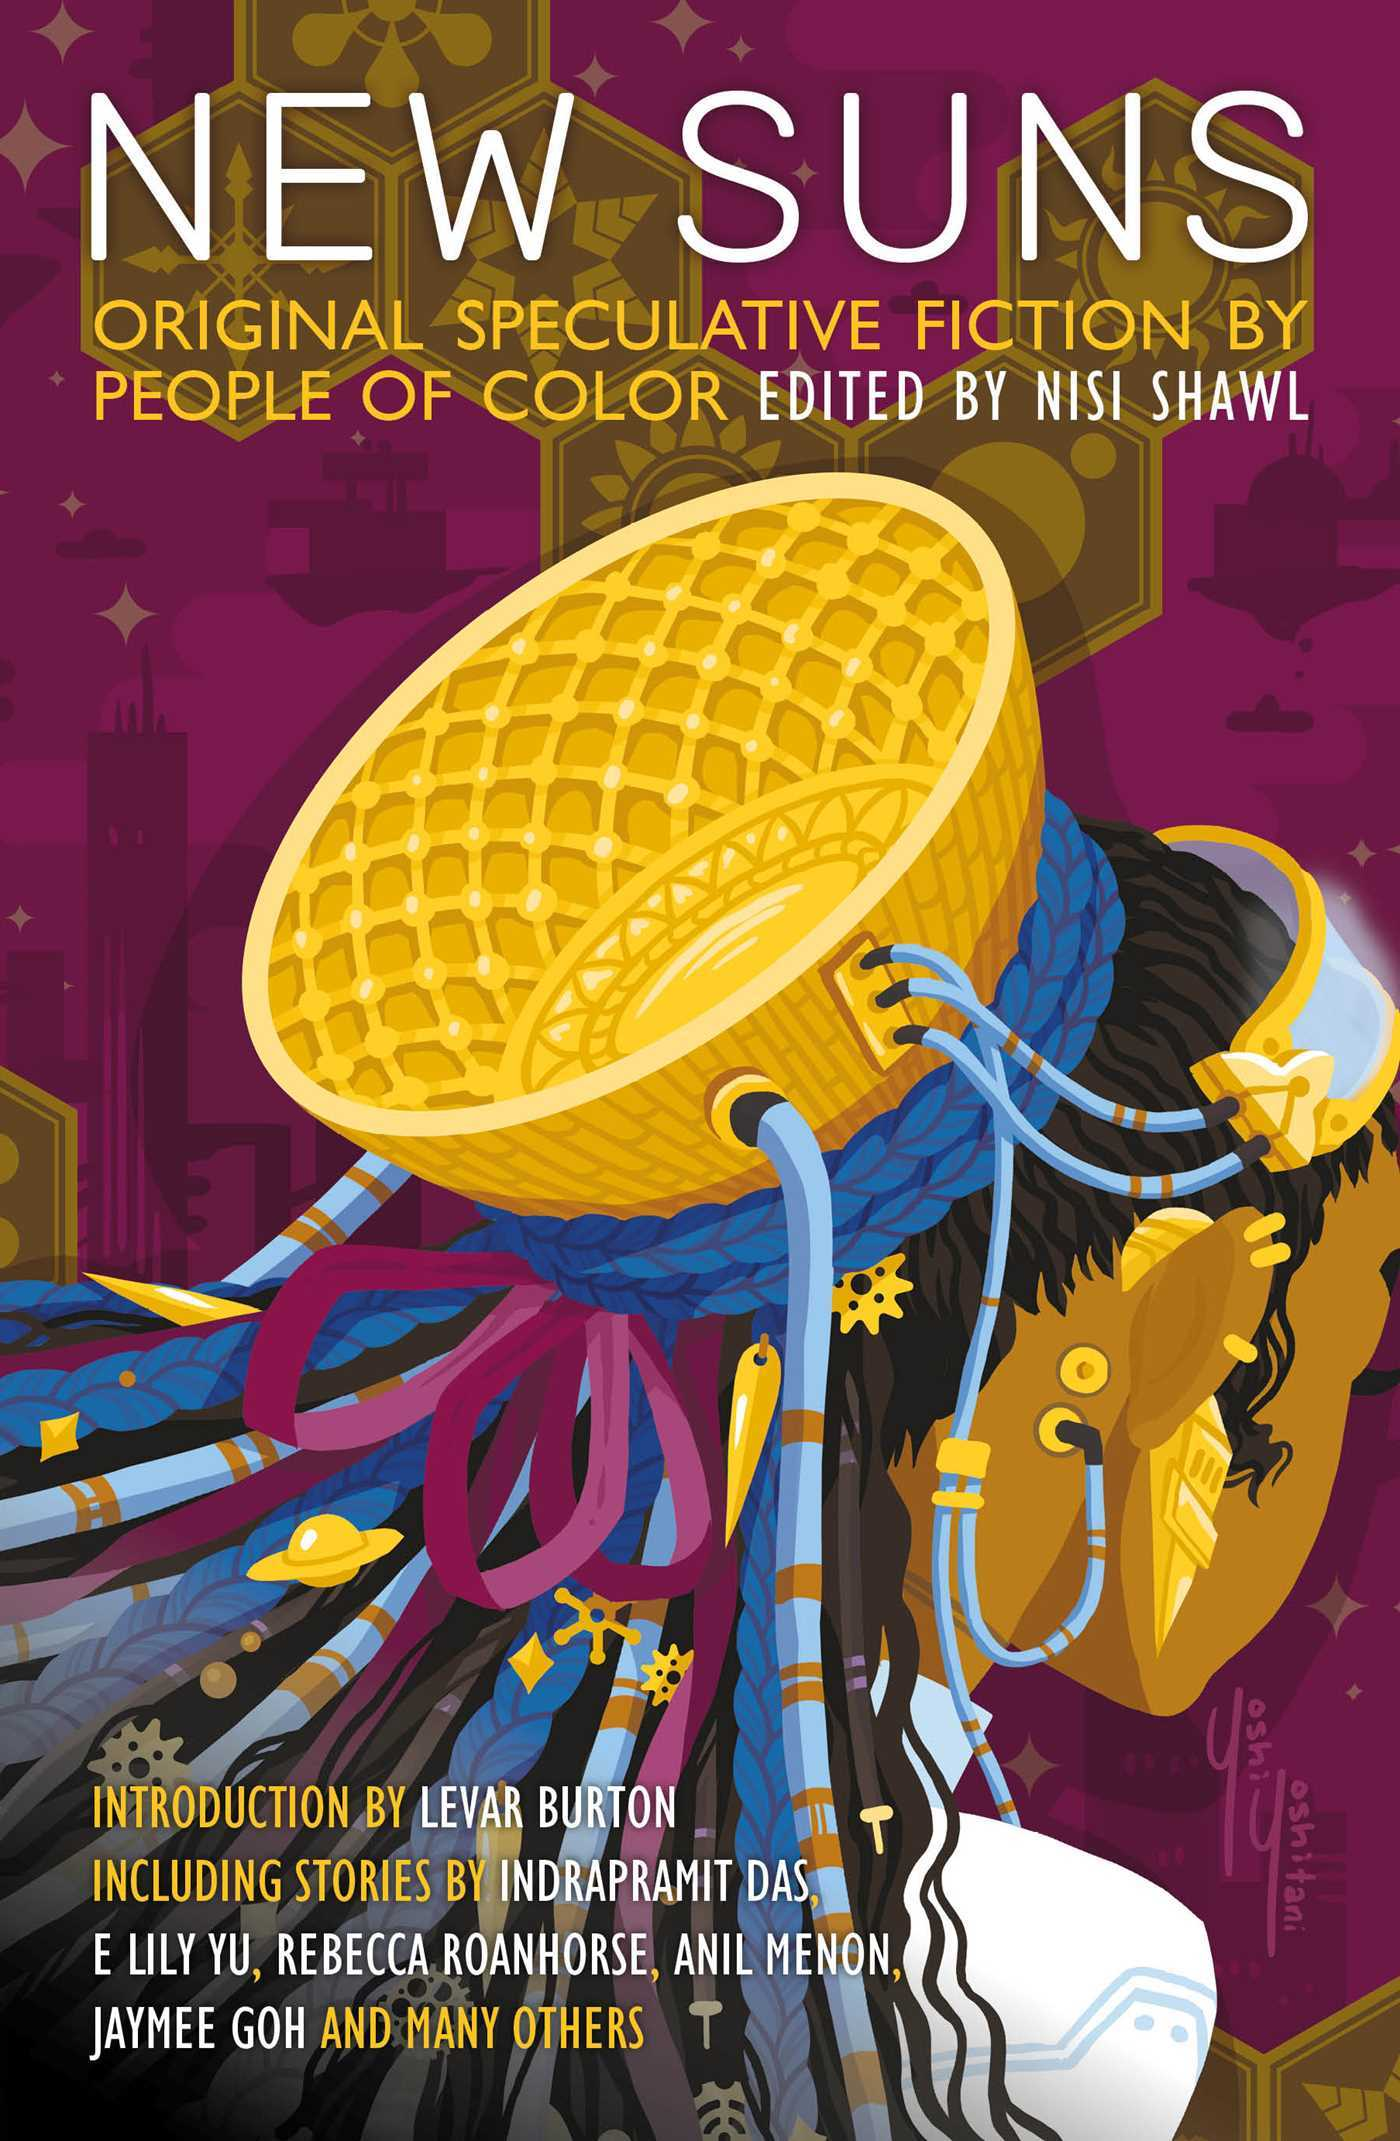 New Suns: Original Speculative Fiction by People of Color by Nisi Shawl